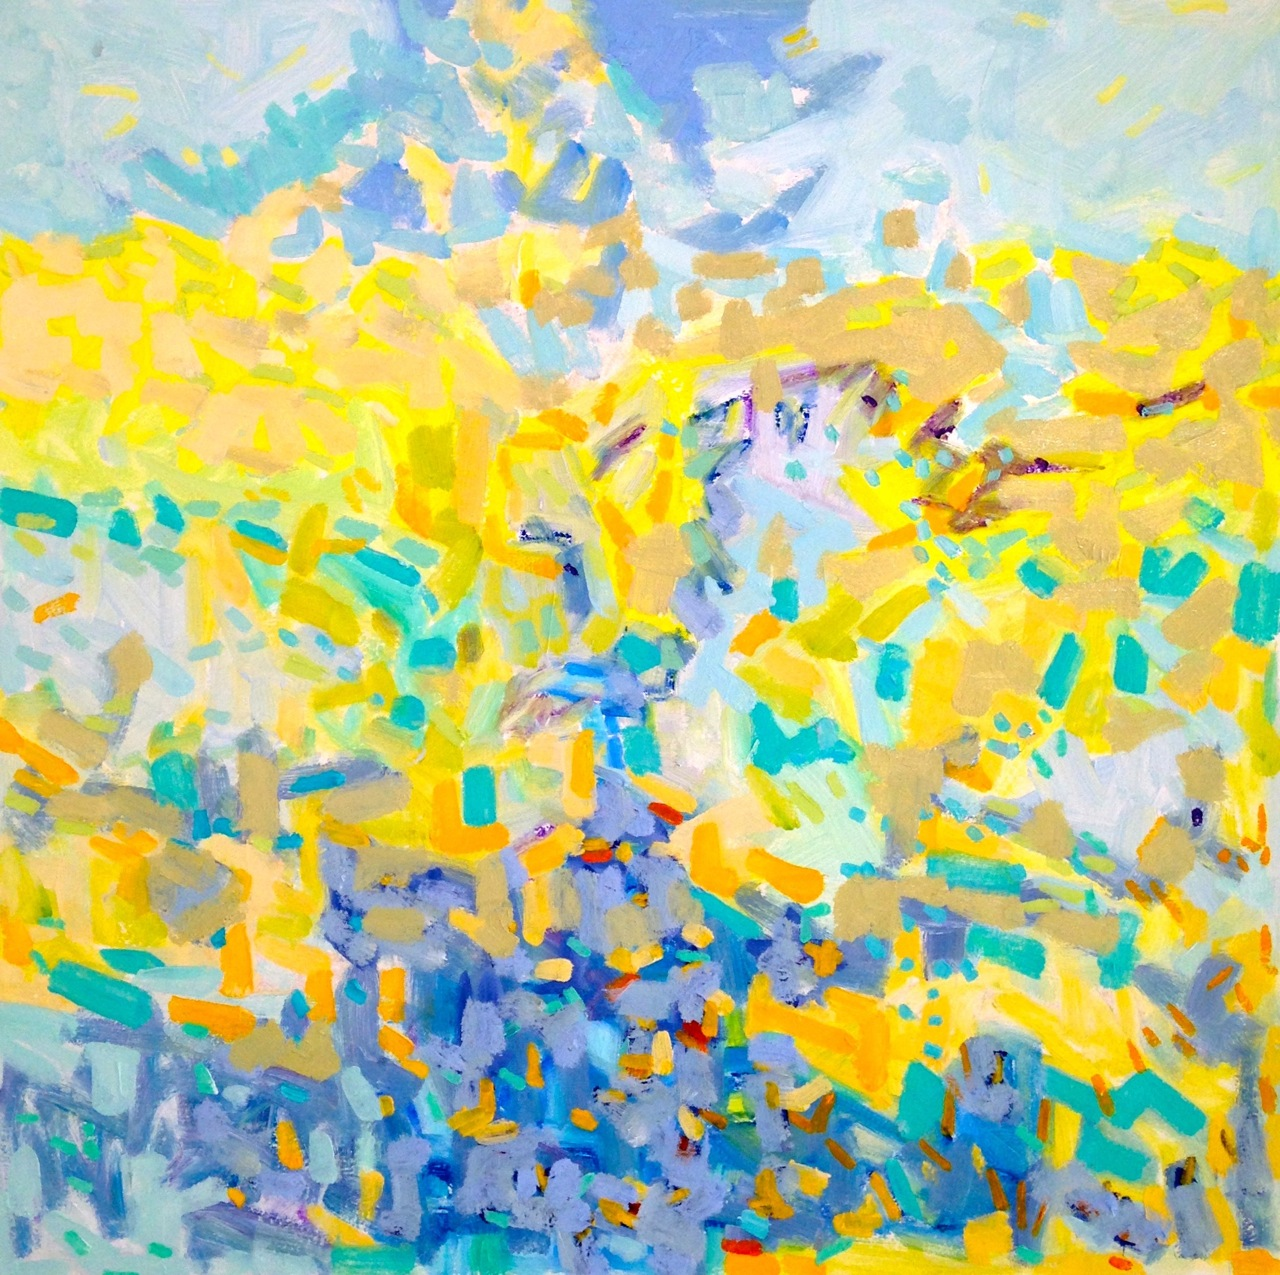 Stream, Sunrise by Karen Blair at Les Yeux du Monde Art Gallery